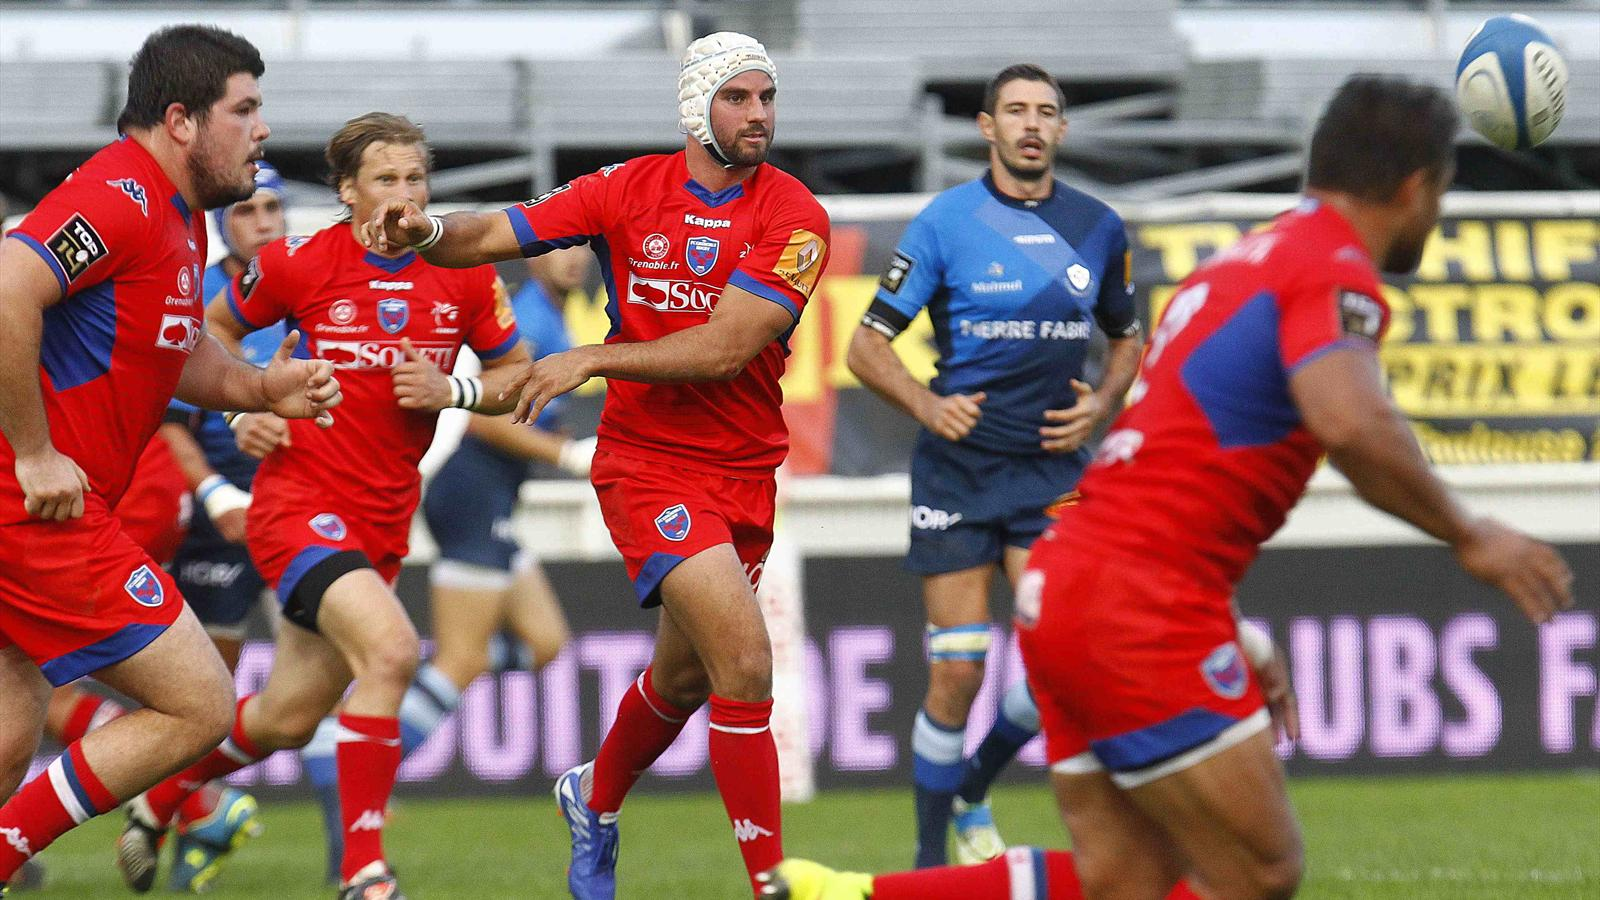 9e journ e top 14 brive le match du rachat pour grenoble top 14 2014 2015 rugby rugbyrama - Coupe a 10 euros grenoble ...